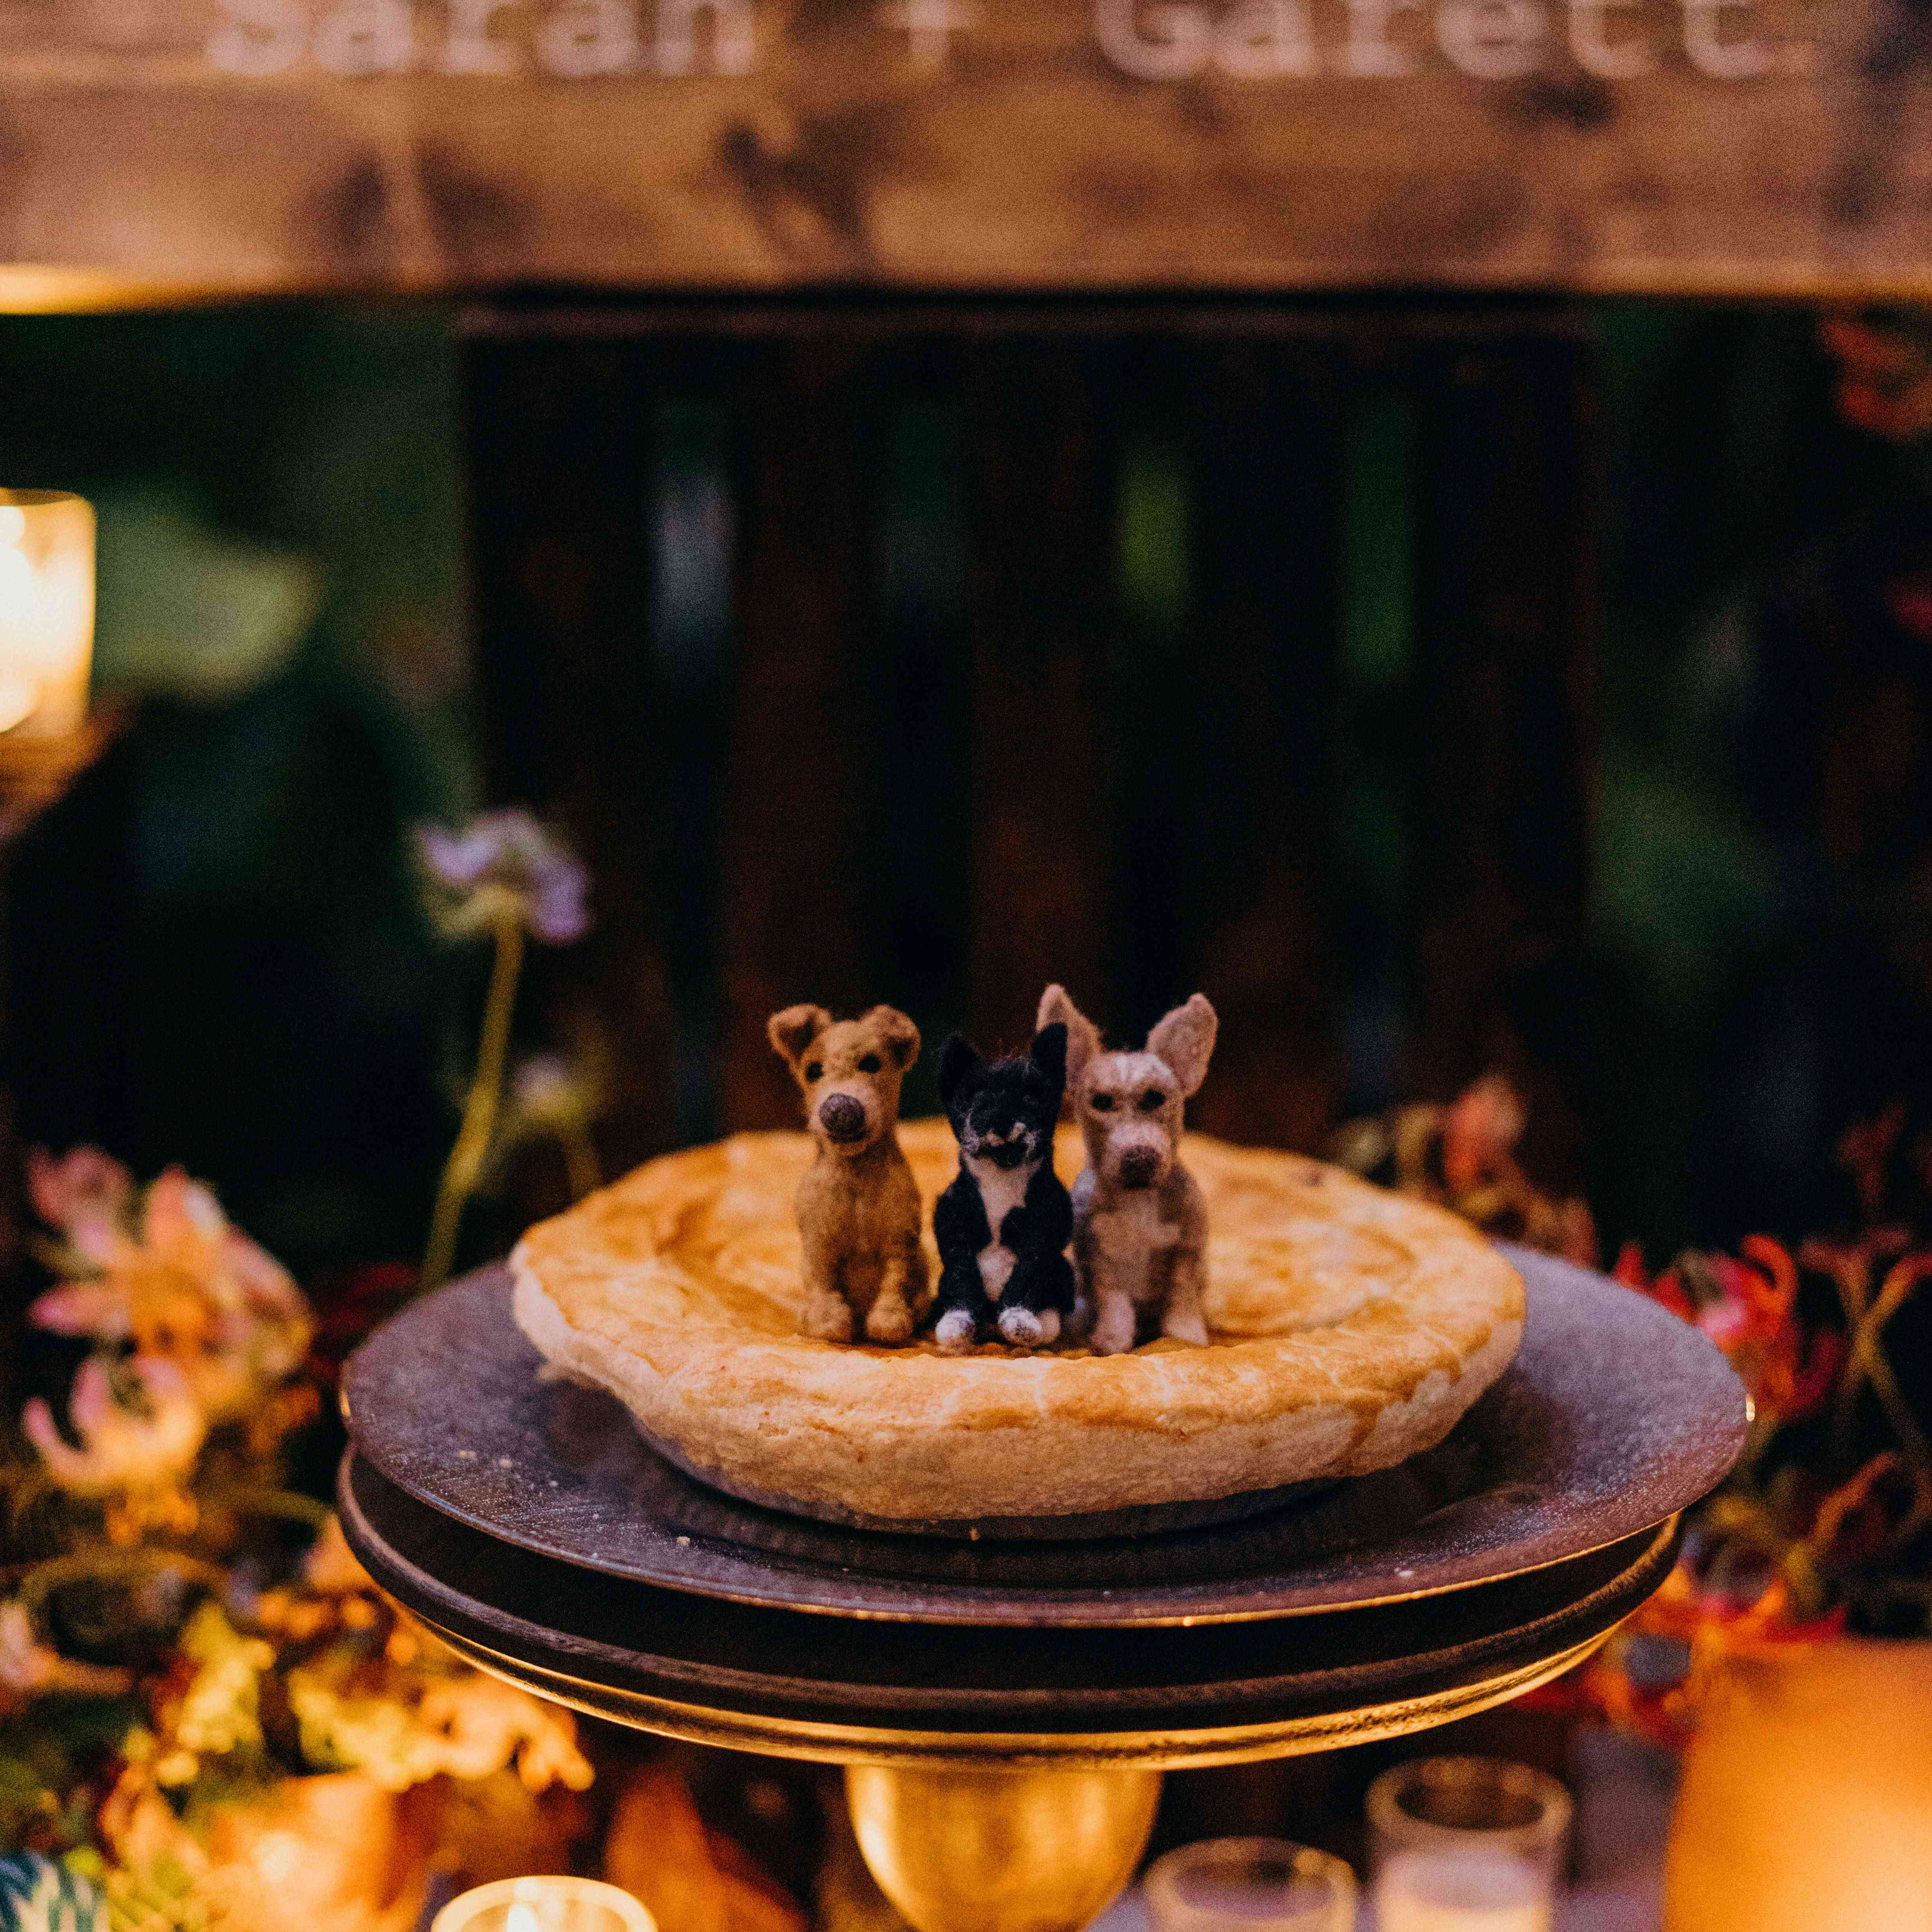 pie with dog topper